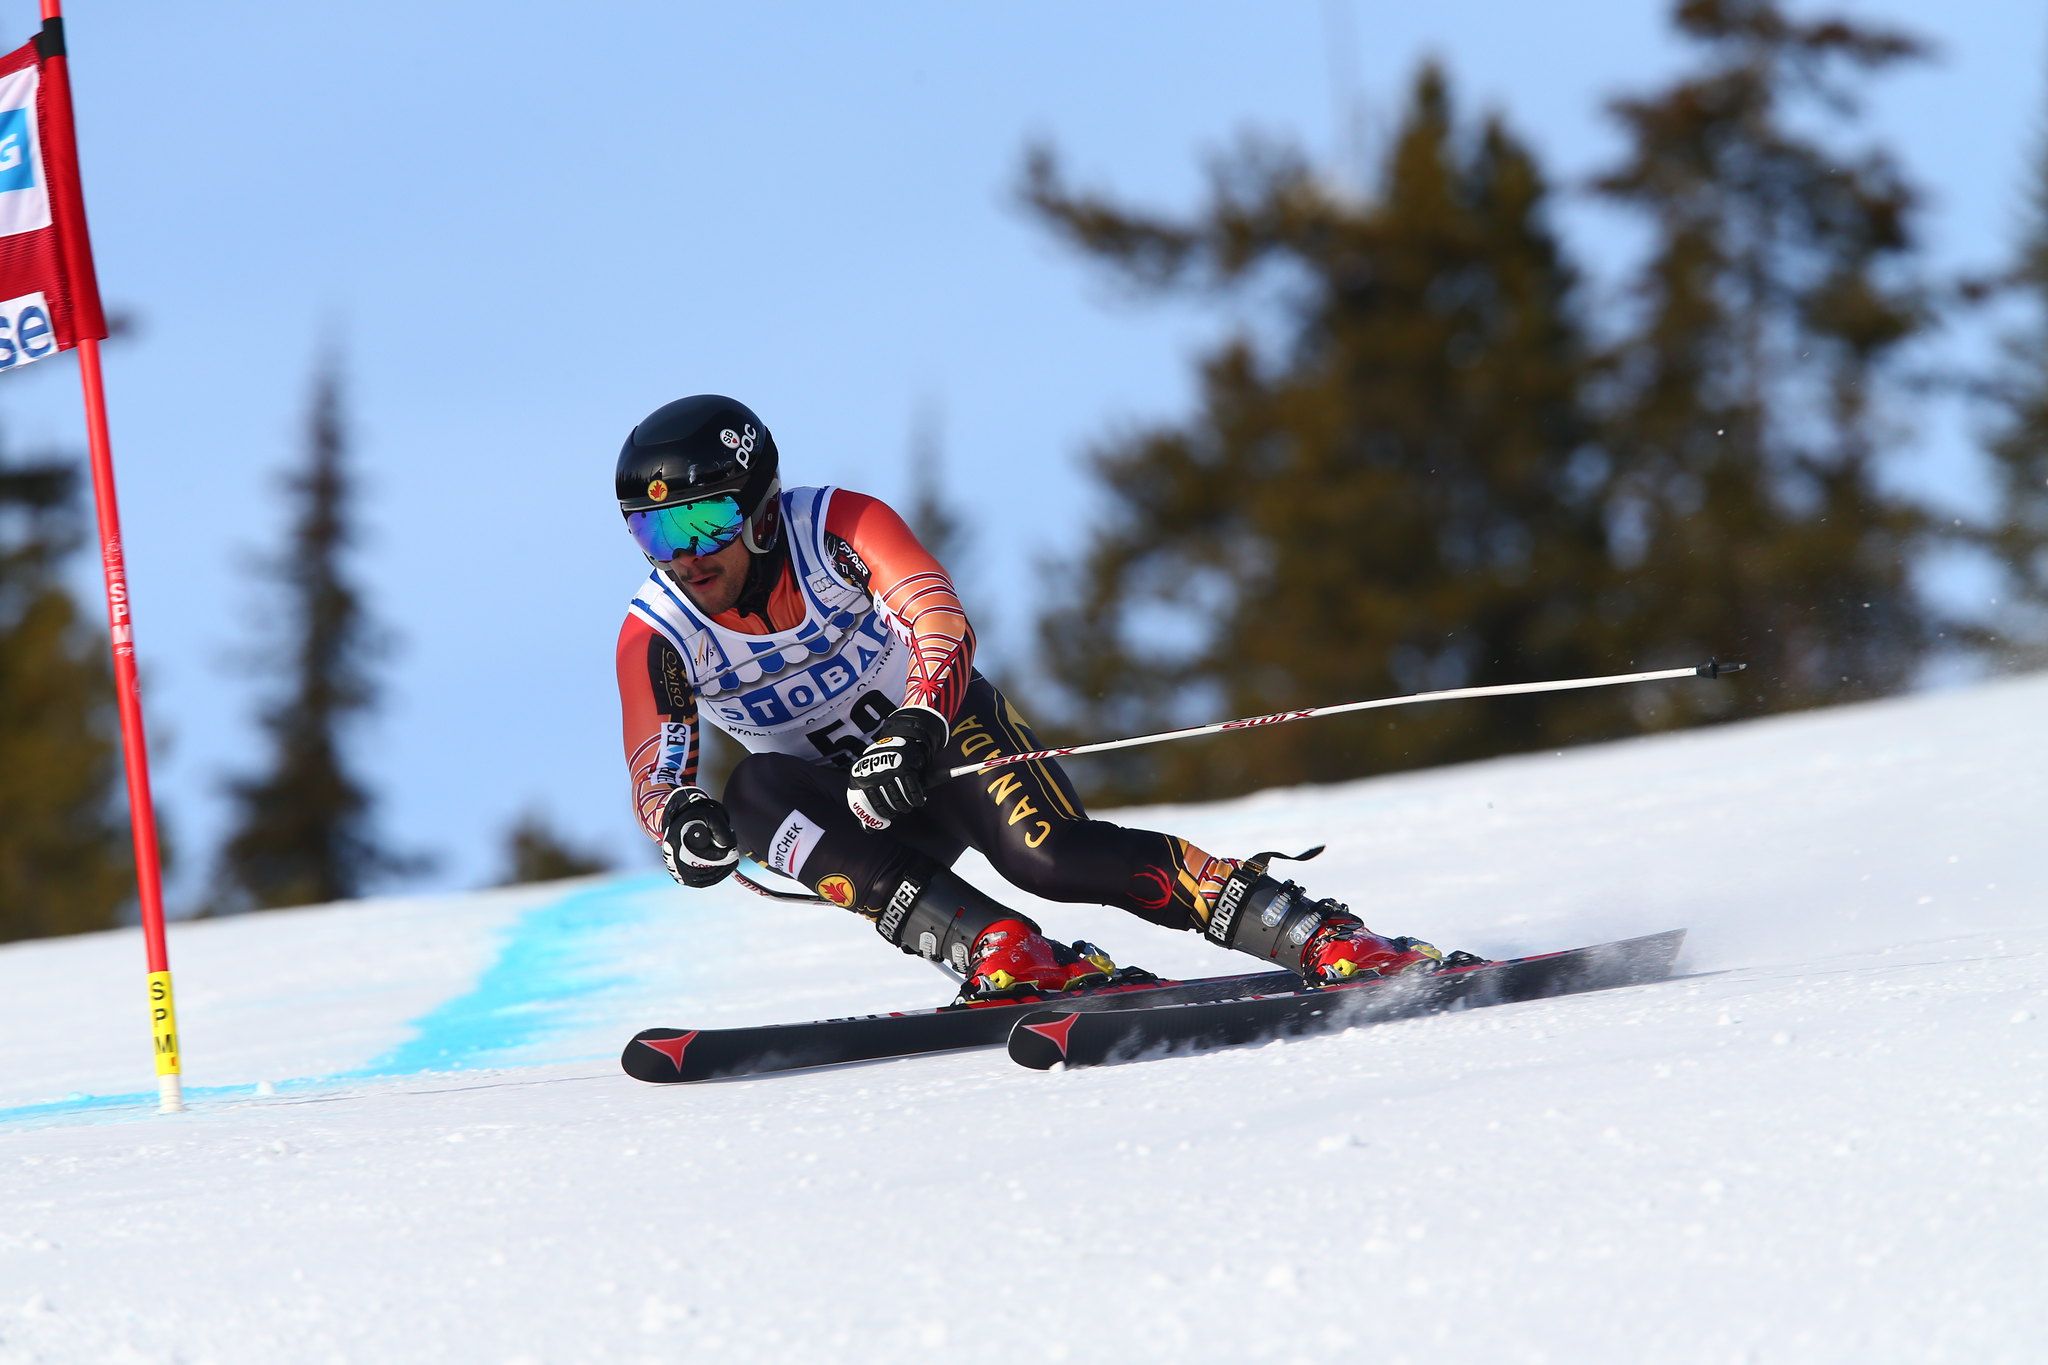 Conrad Pridy in action during training at the FIS Alpine World Cup in Lake Louise, CAN